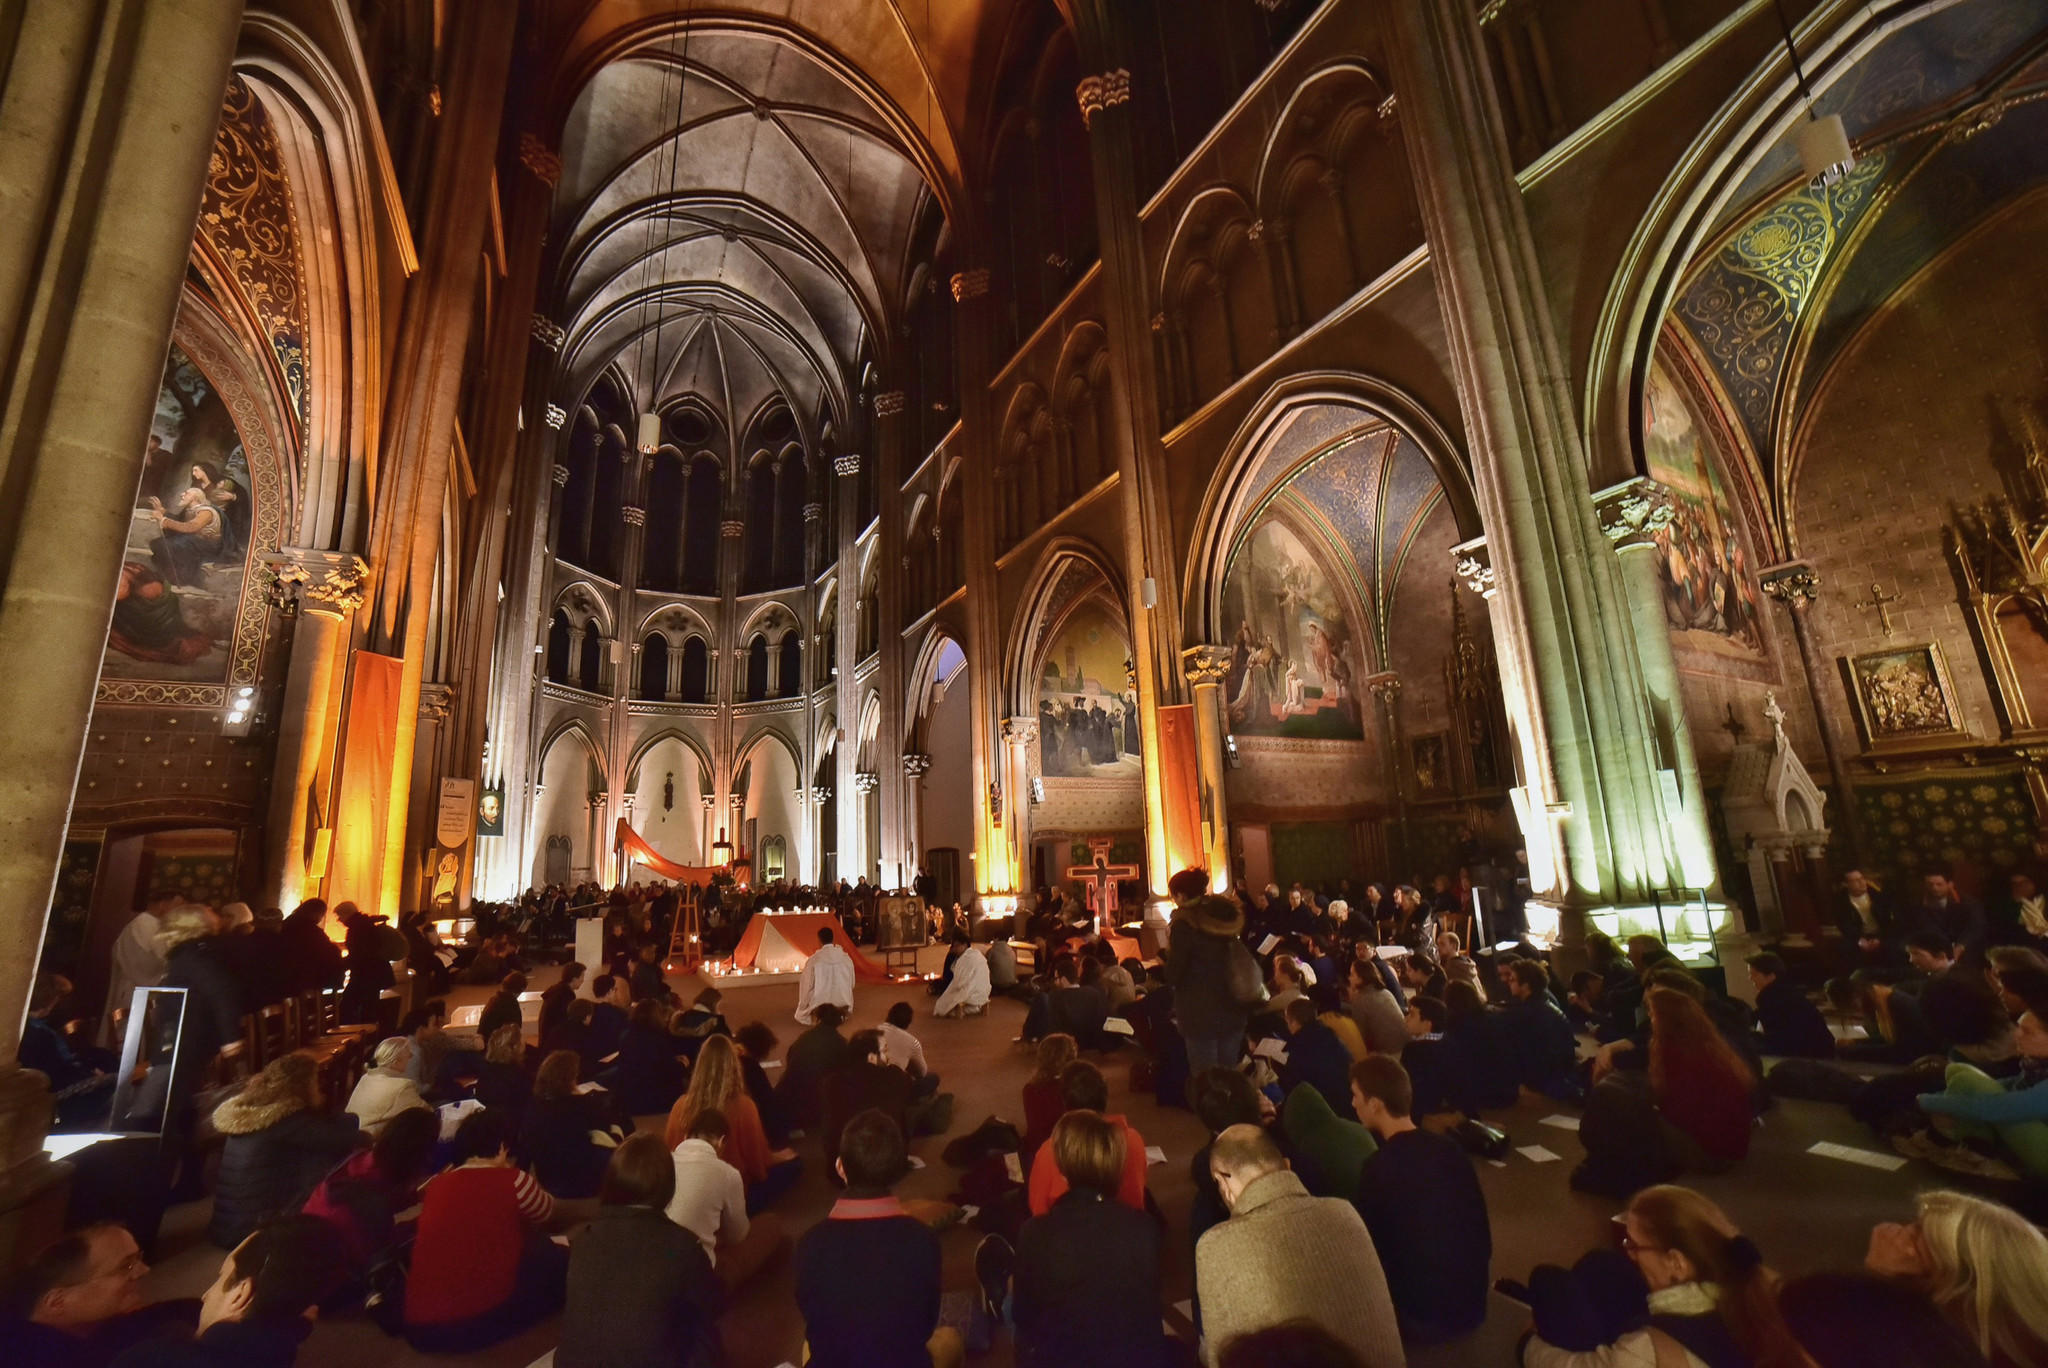 People in Paris' St. Ignatius church Saturday pray for world leaders to curb global warming. (Marie Renaux / Taize via Associated Press)